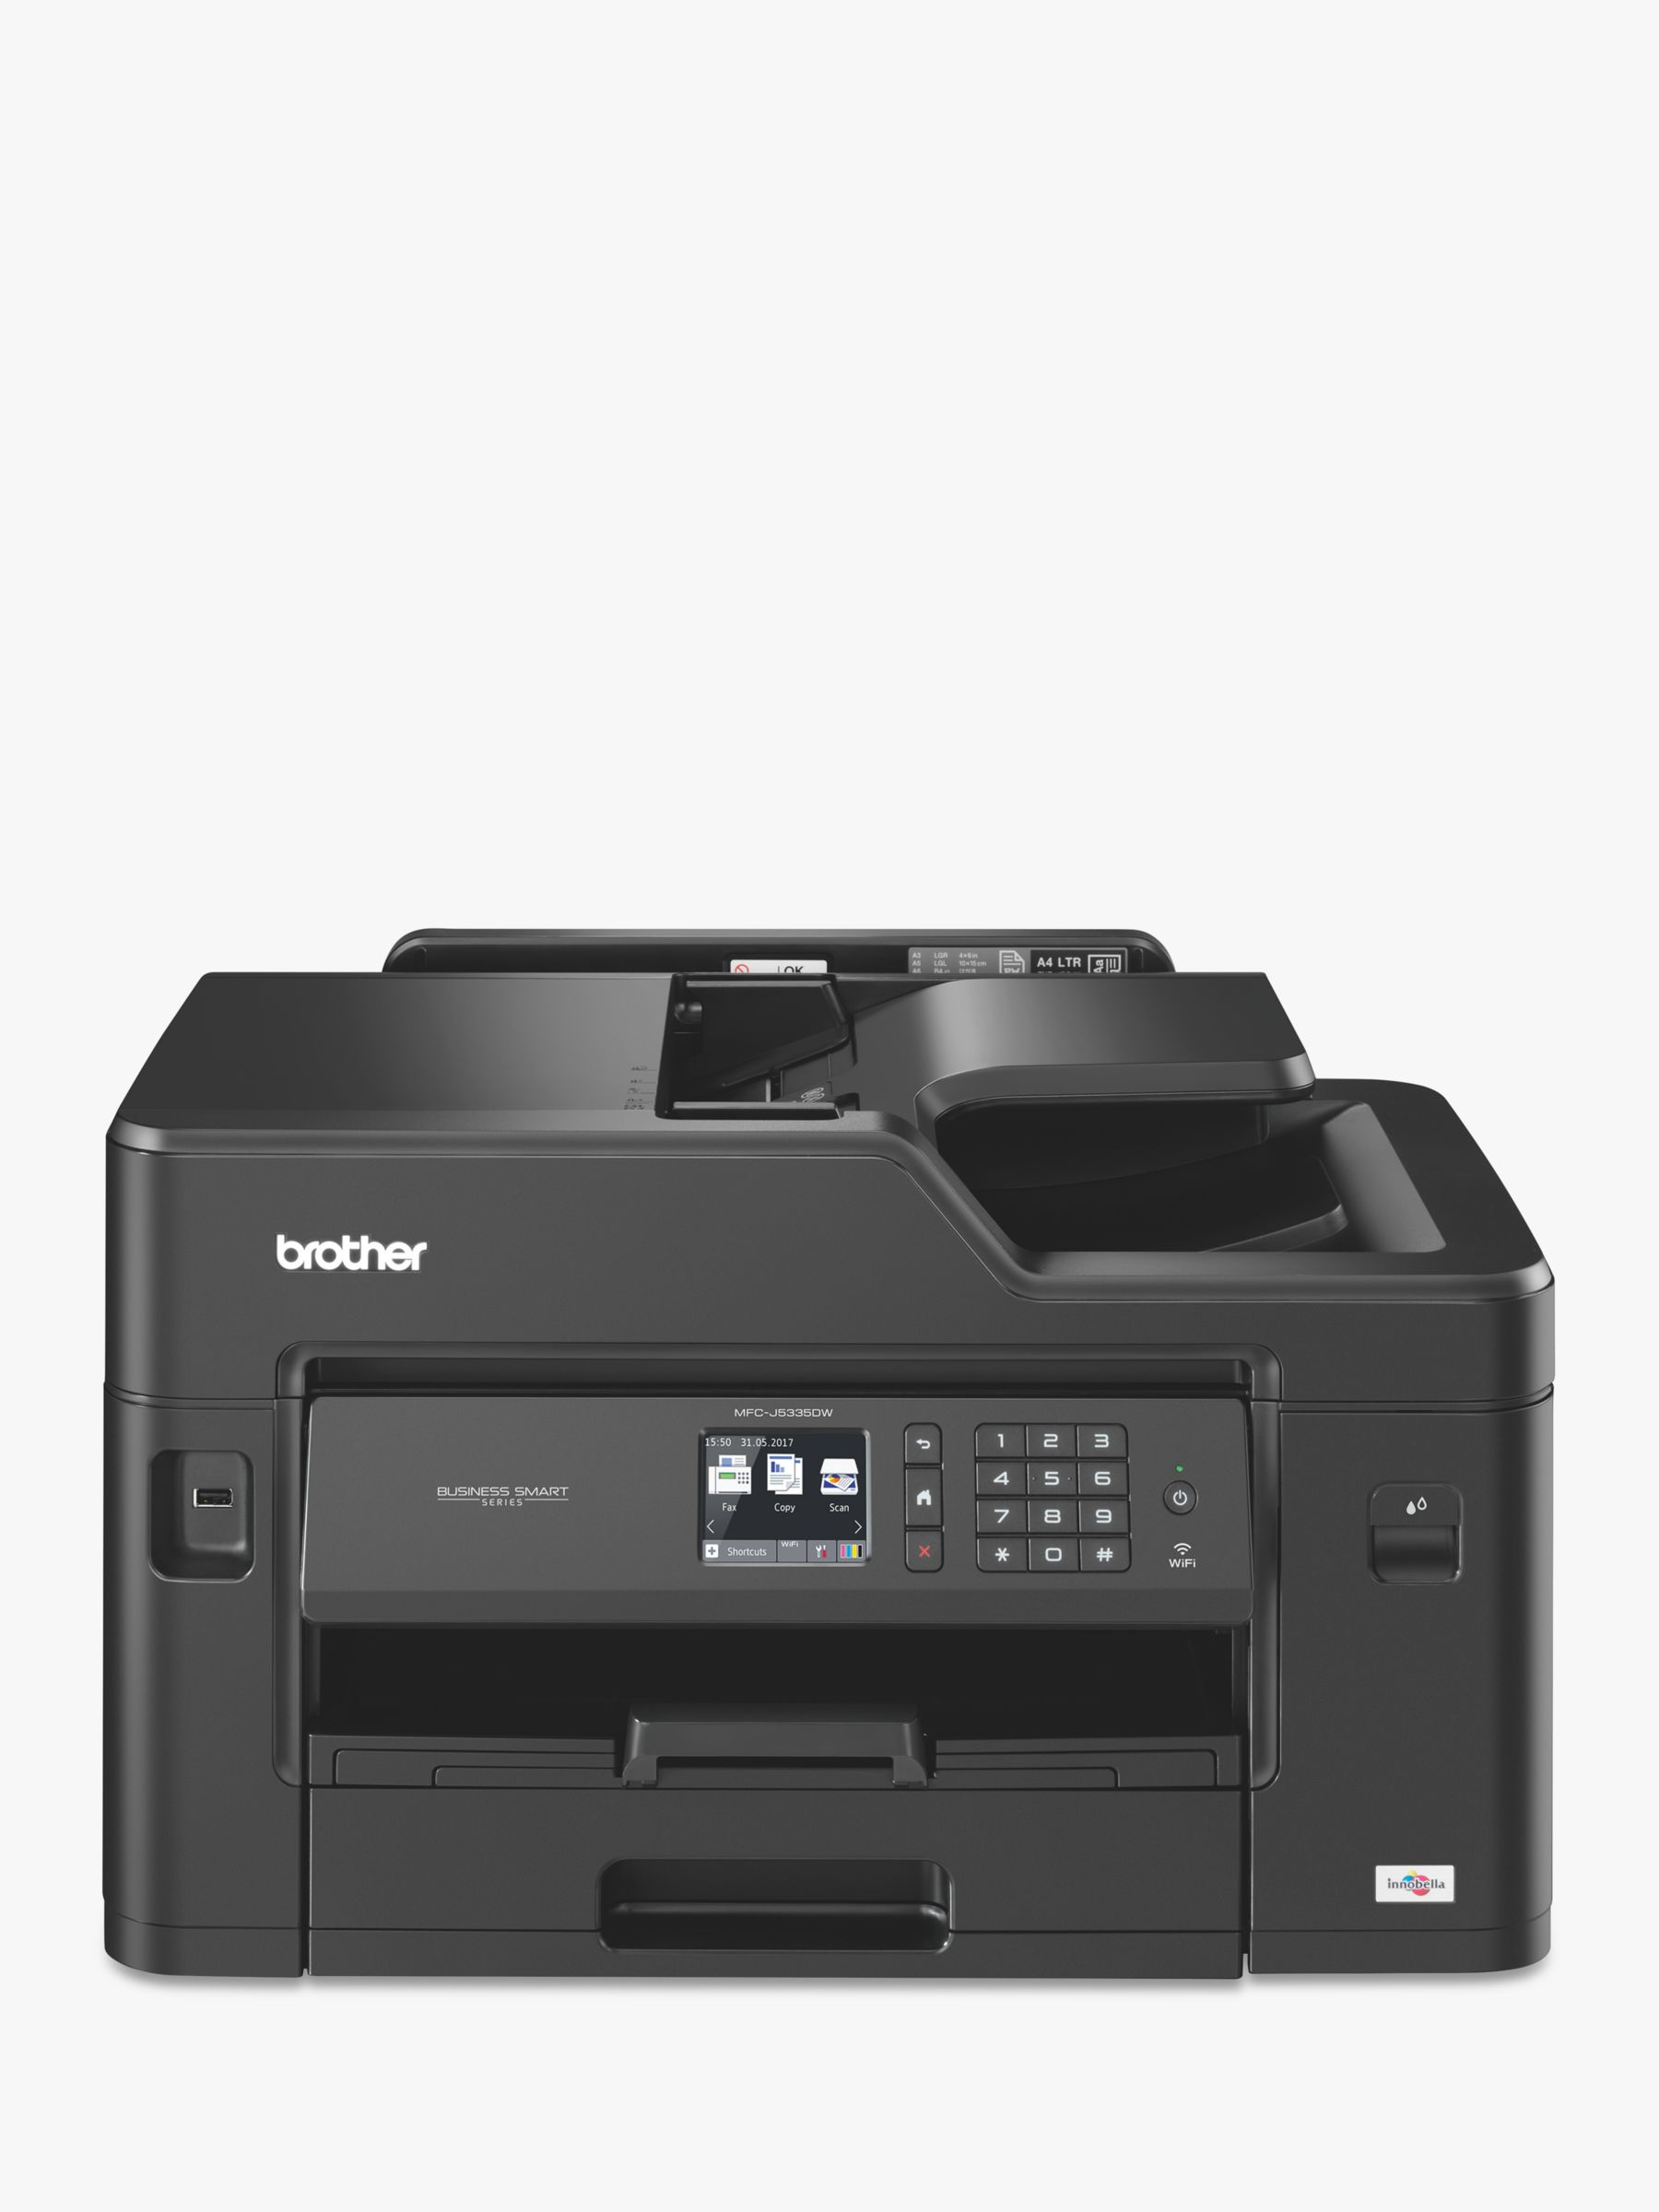 Brother Brother MFC-J5335DW Wireless All-in-One Colour Inkjet Printer & Fax Machine with A3 Printing